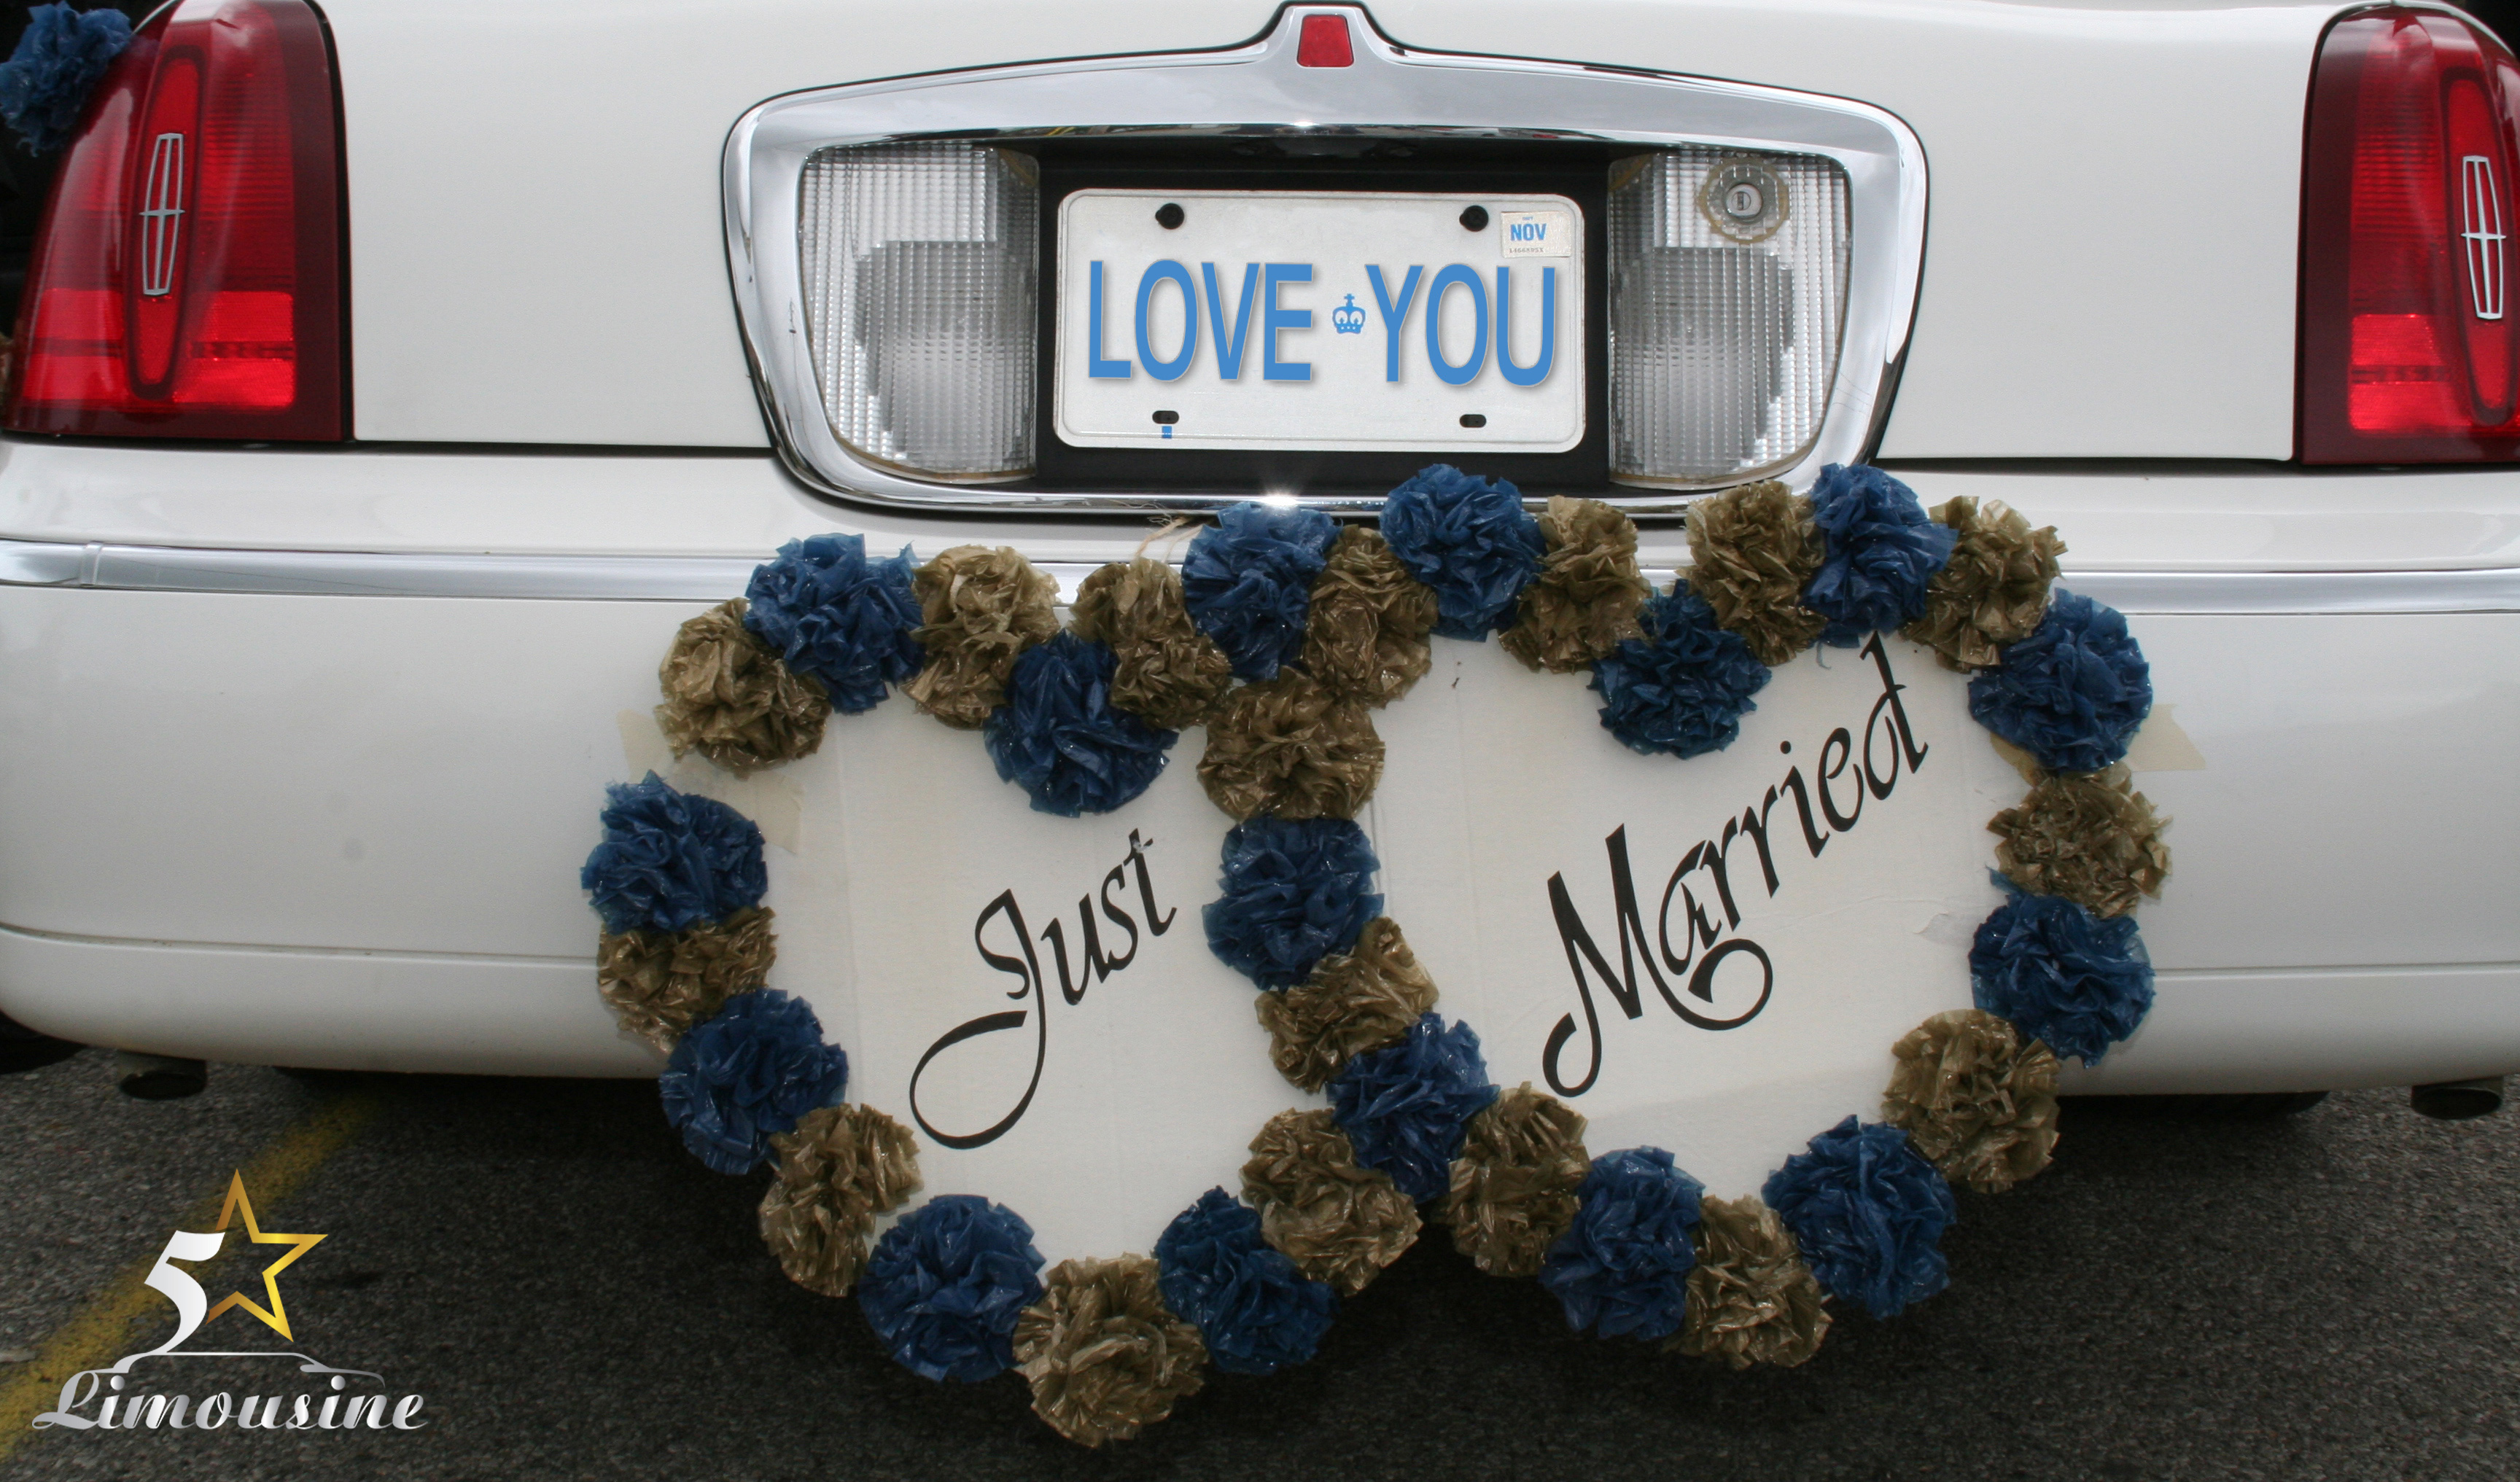 Hire a Limo for your Las Vegas wedding